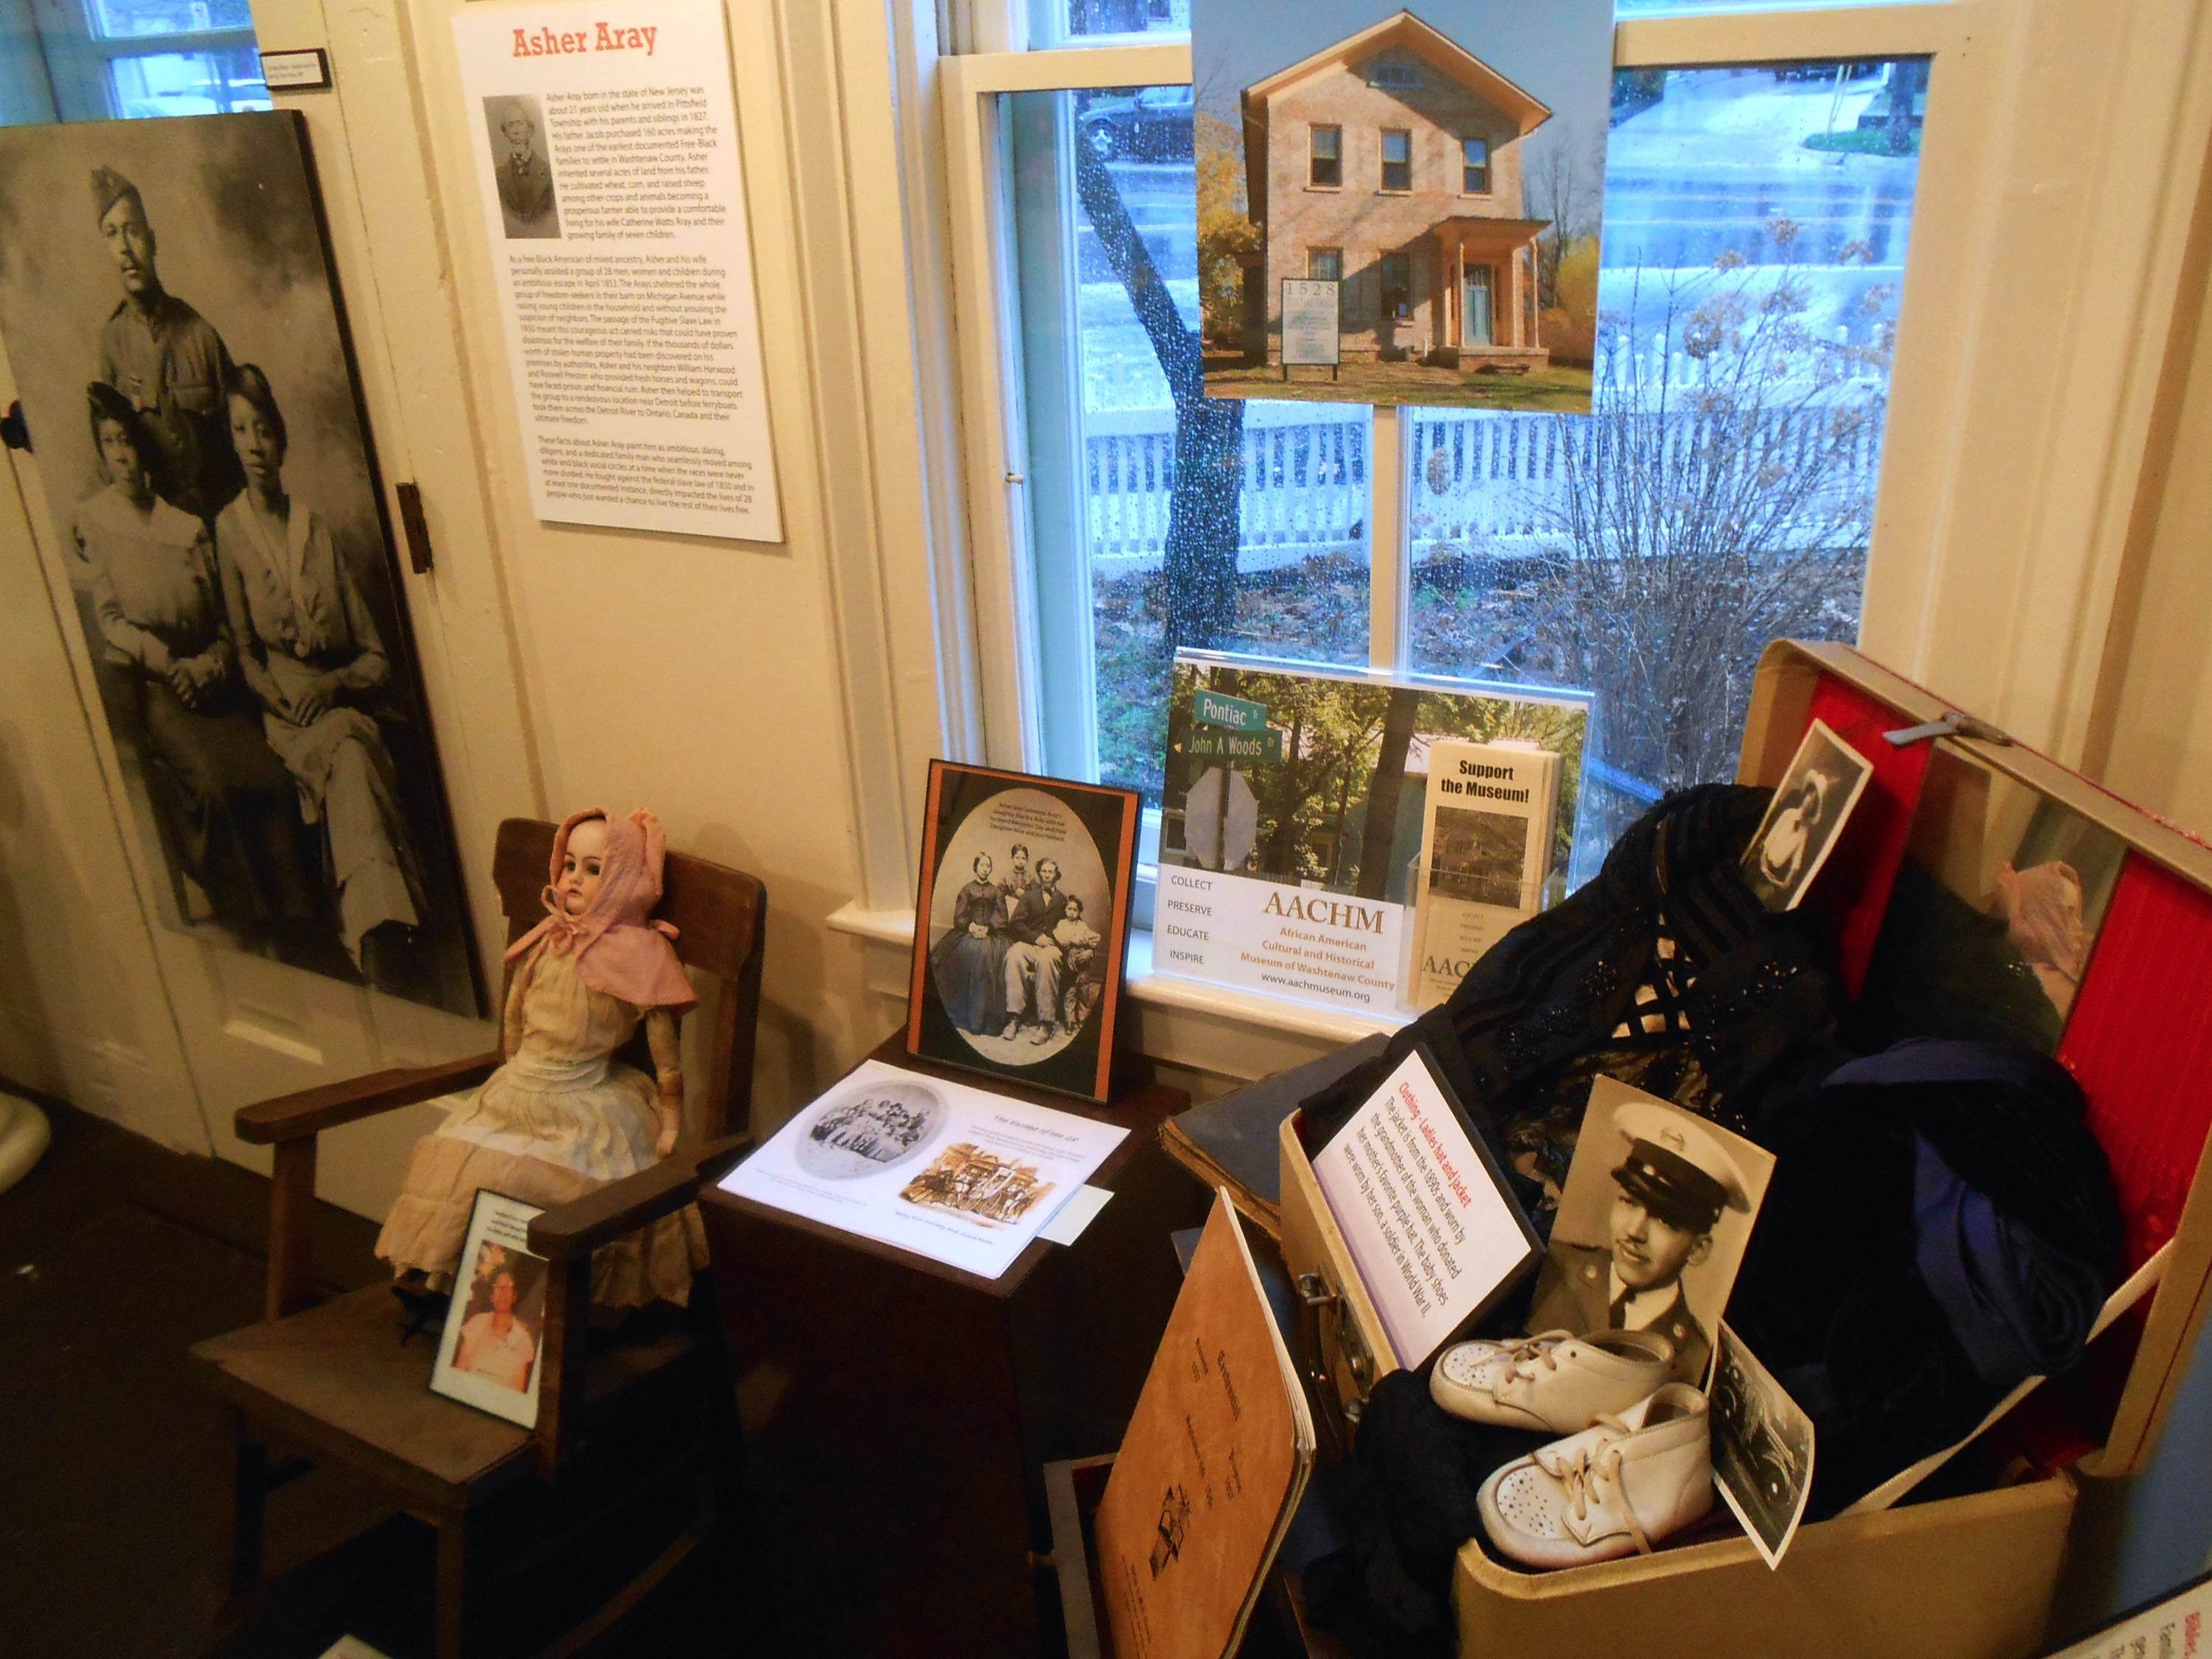 A temporary exhibit on the Aray family, conductors on the Underground Railroad, including a prized gourd doll made by one of the Aray family members that was recently donated to the museum by a descendant